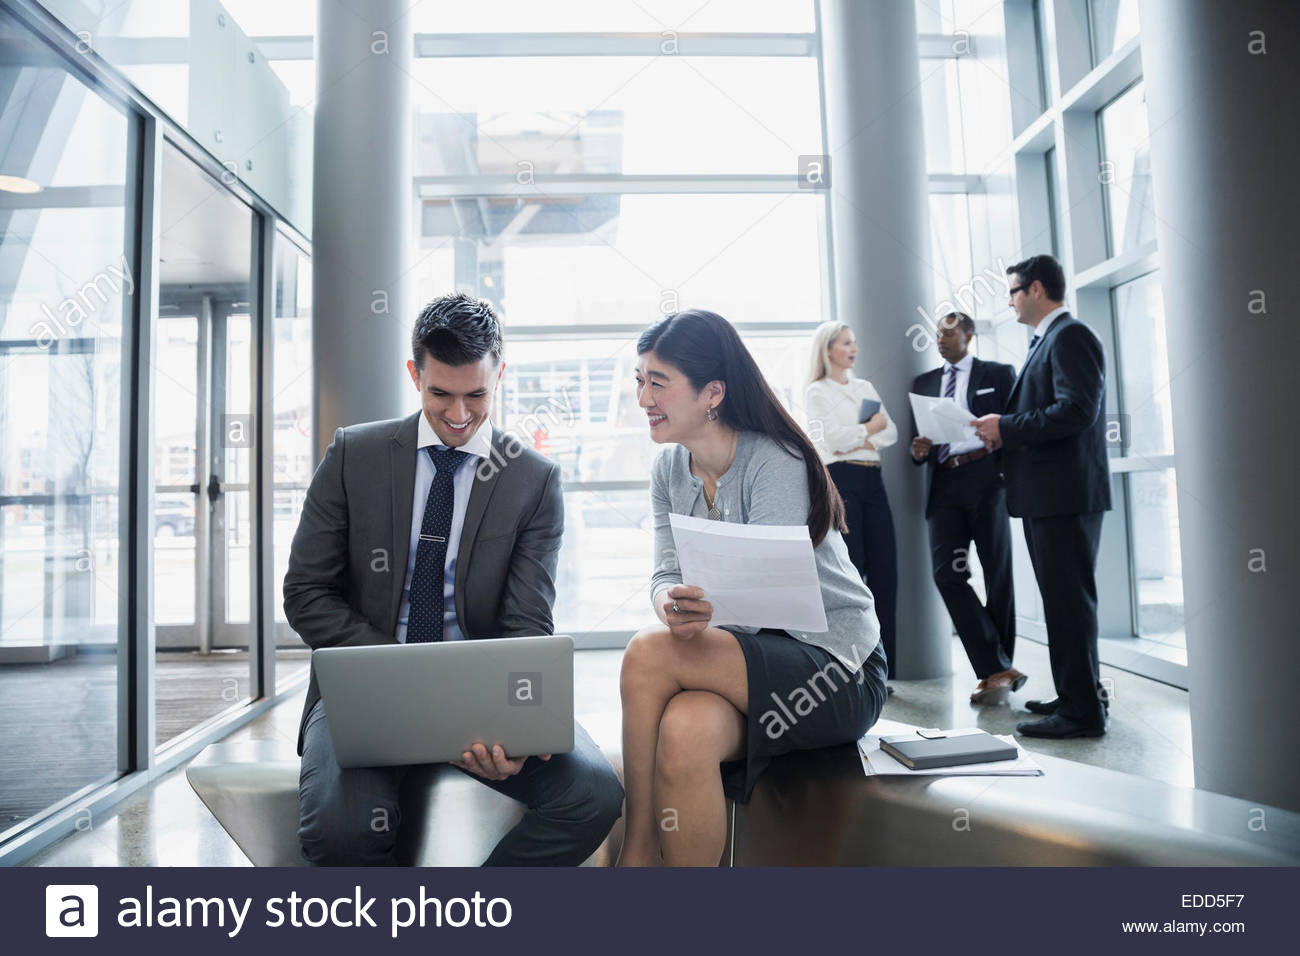 Businessman and businesswoman using laptop - Stock Image